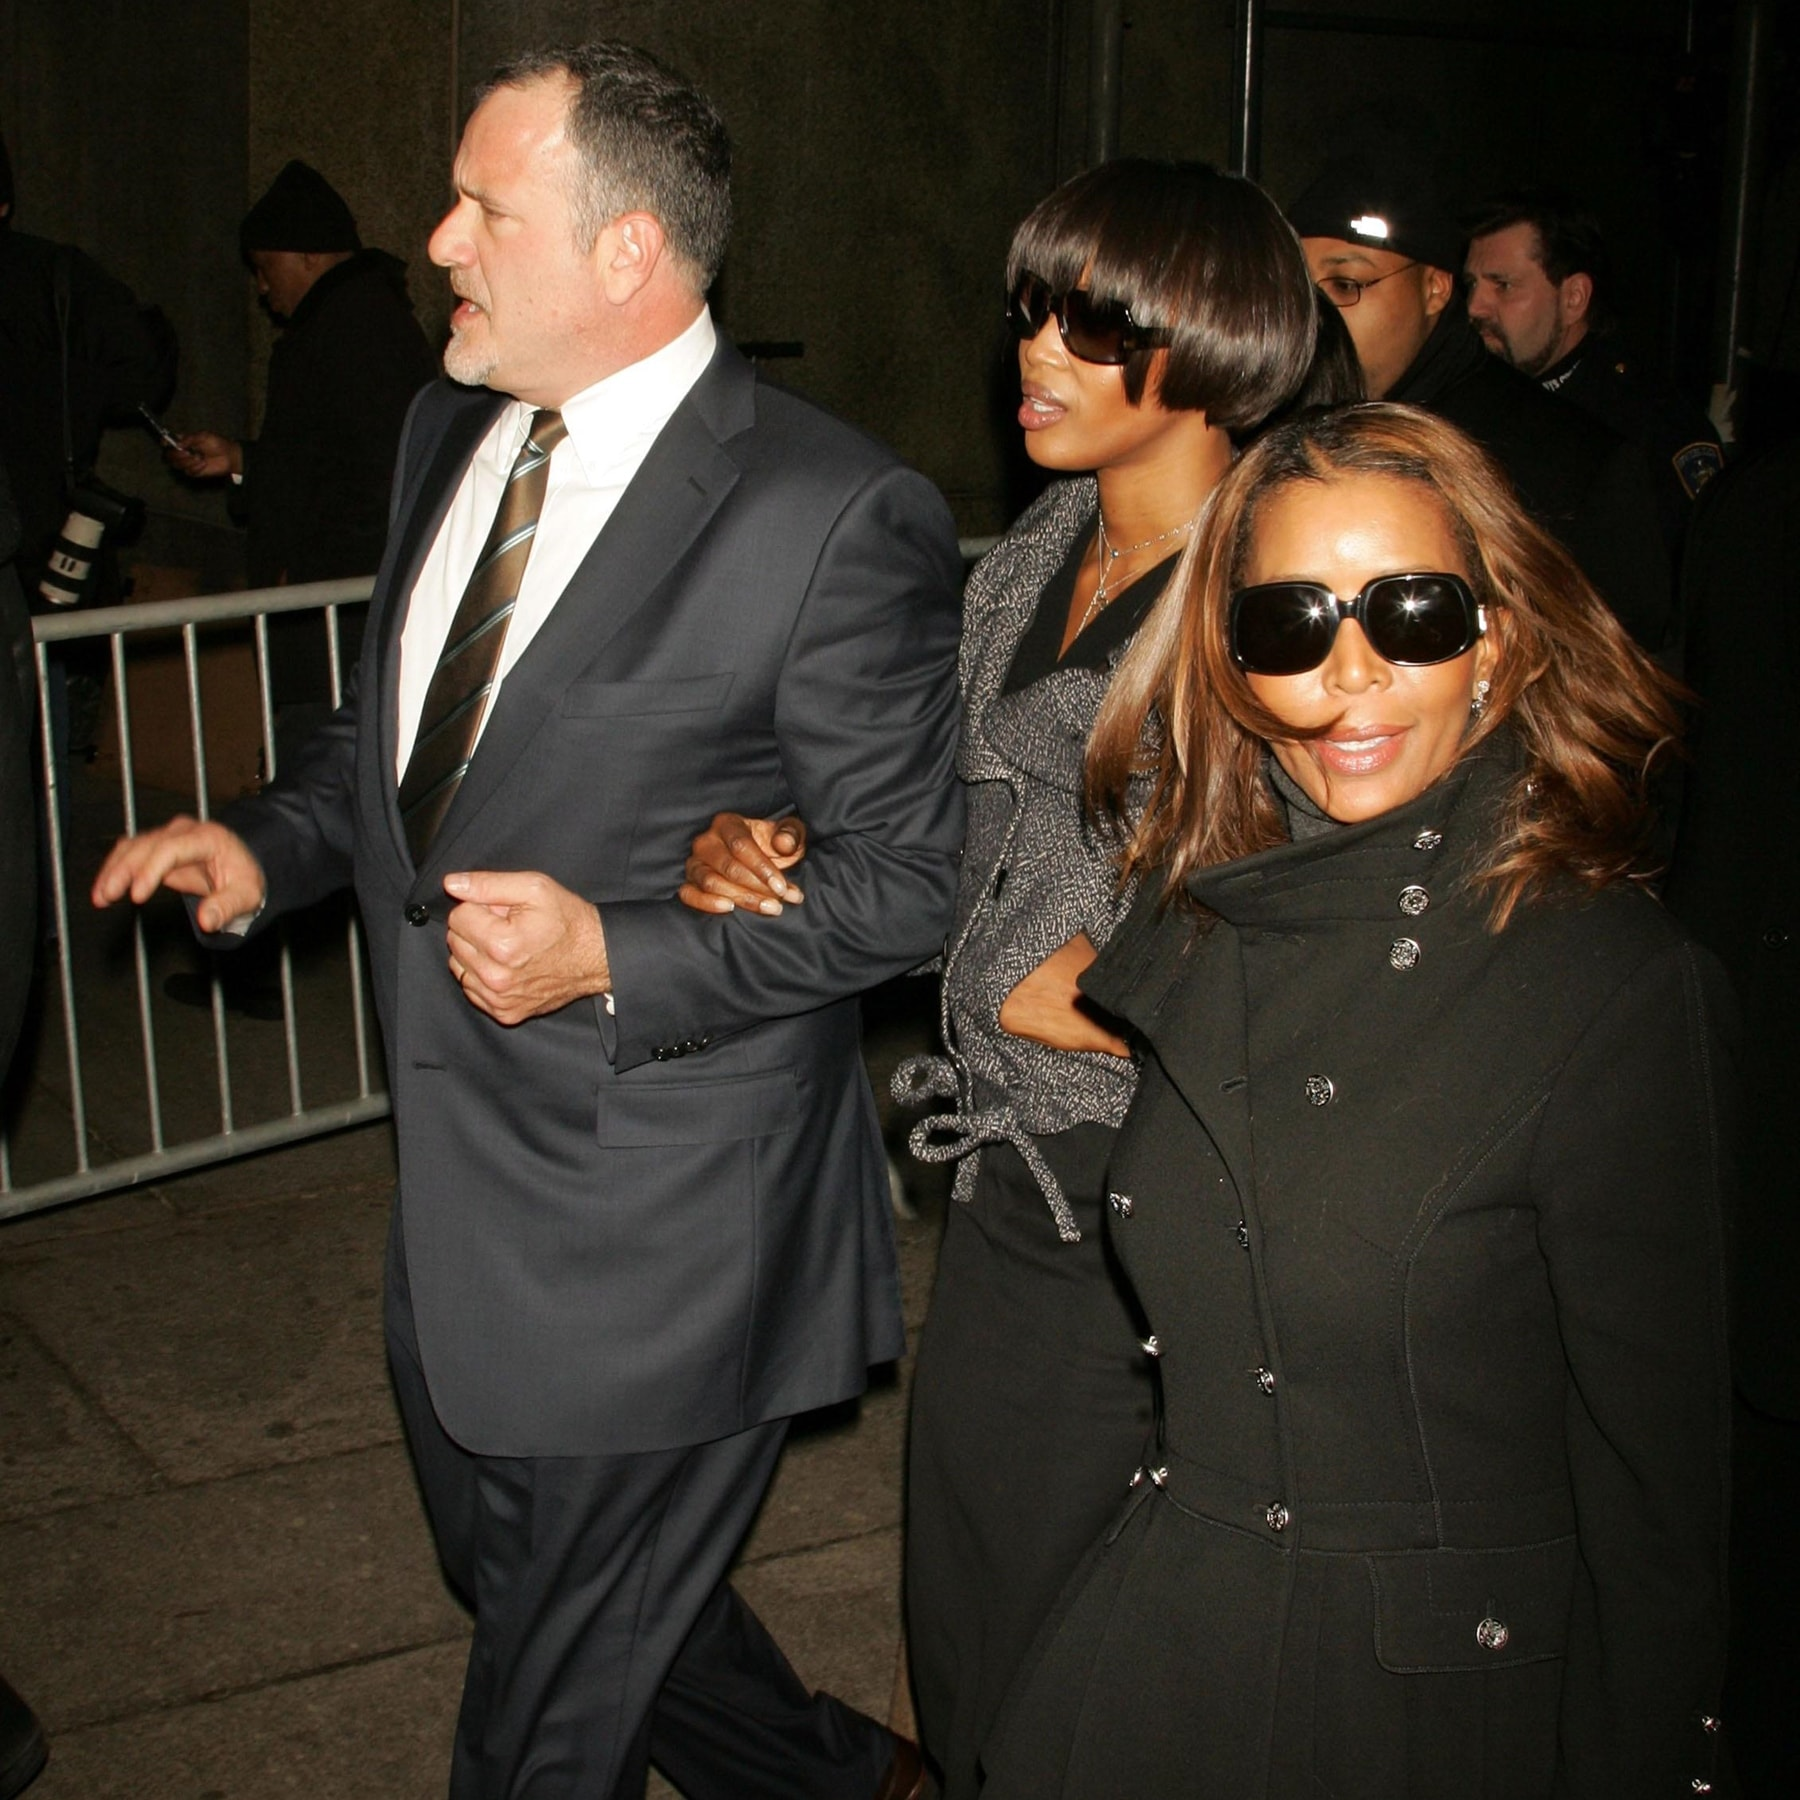 In January 2007, supermodel Naomi Campbell was sentenced to 5 days of community service and 2 days of anger management courses in Manhattan's Criminal Court after admitting to assaulting housekeeper Ana Scolavaino in a cellphone throwing incident at Campbell's Park Avenue apartment